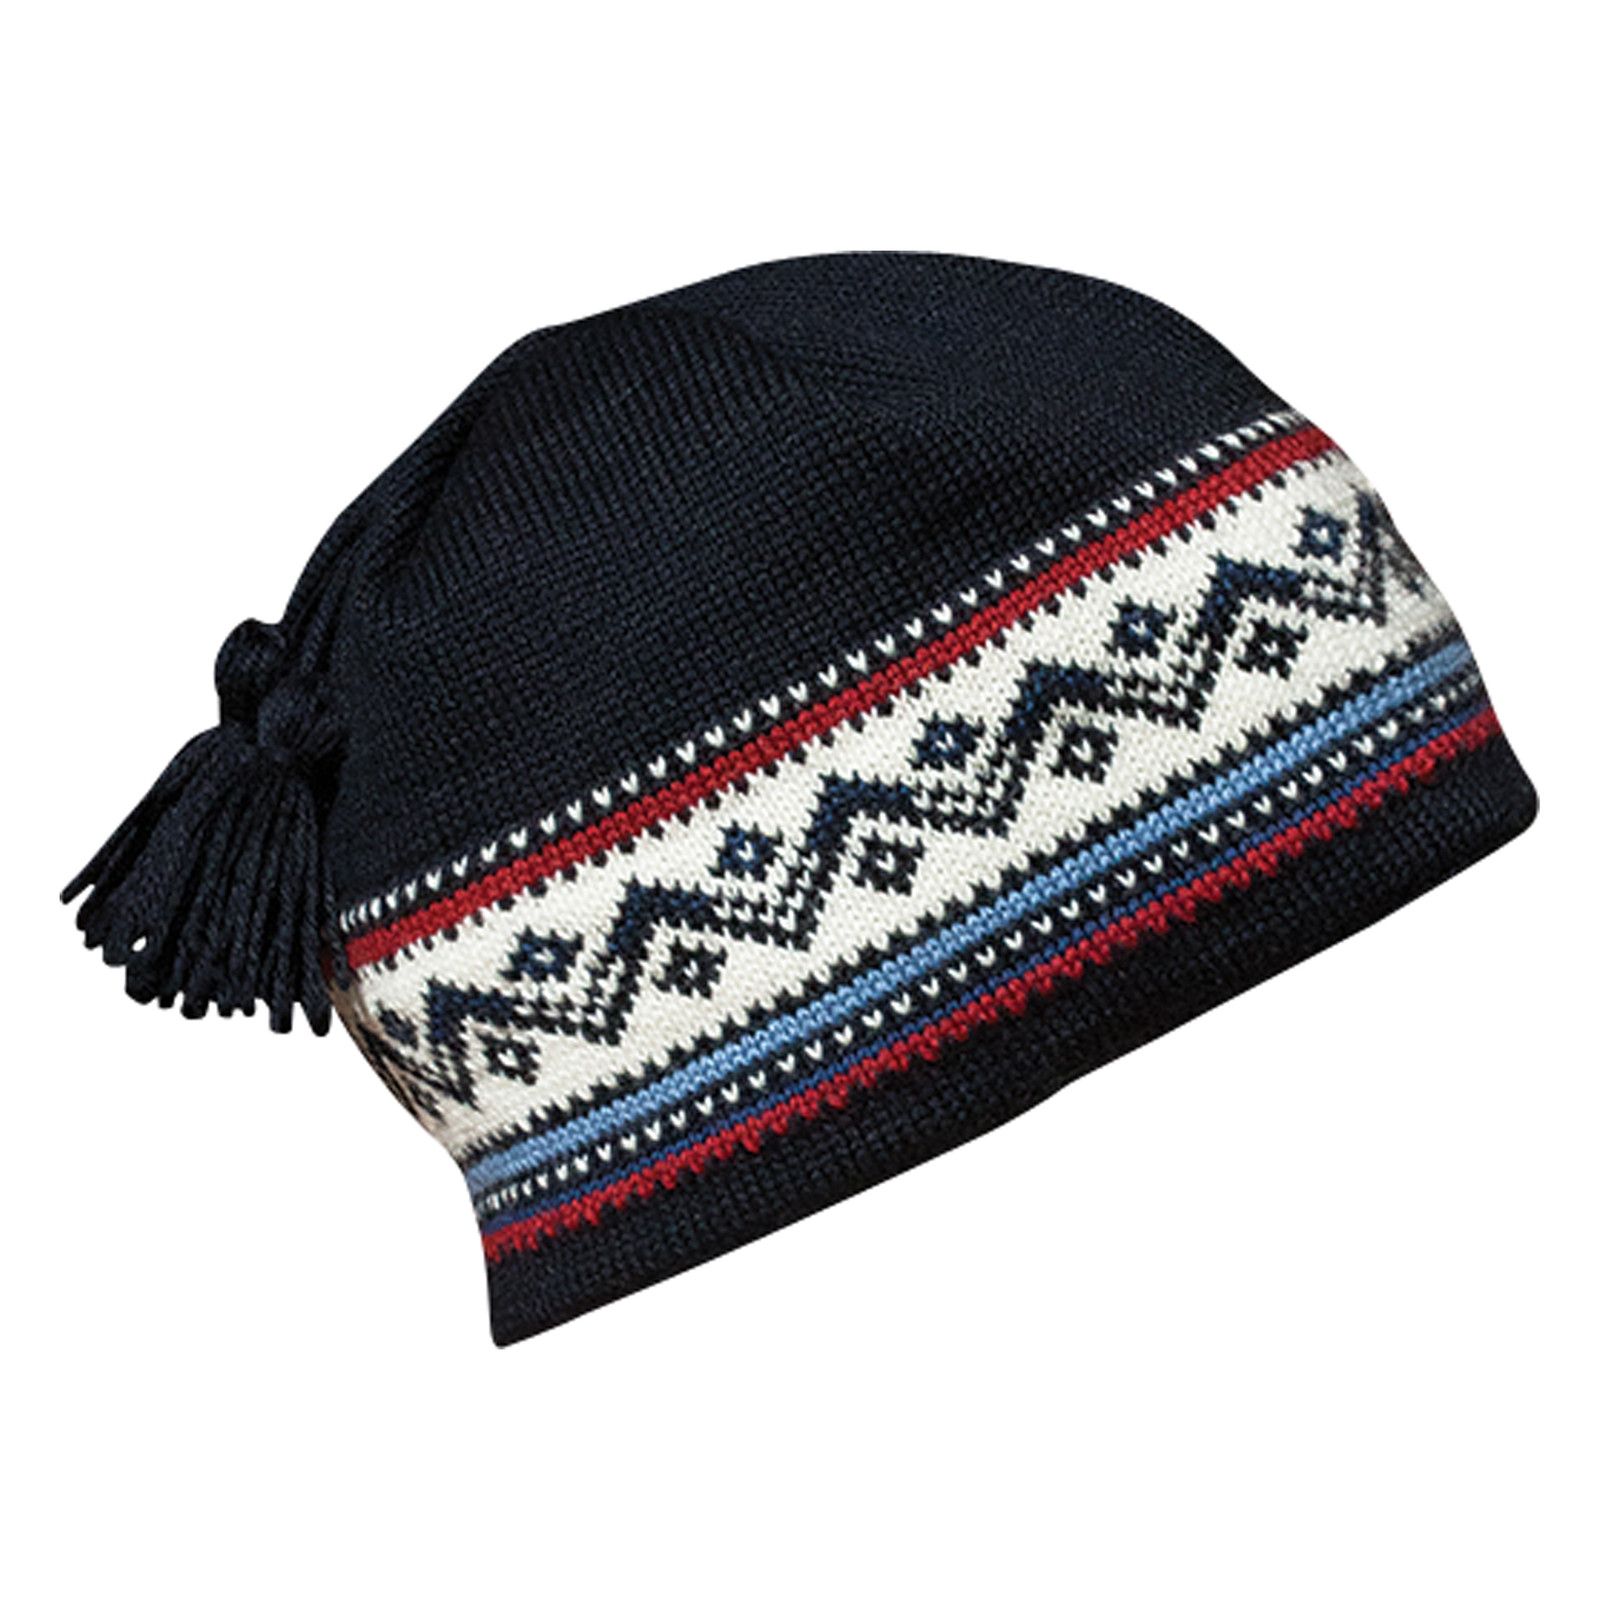 Dale of Norway Vail Unisex Hat in Navy/Red Rose/Off White/Indigo, 40331-C